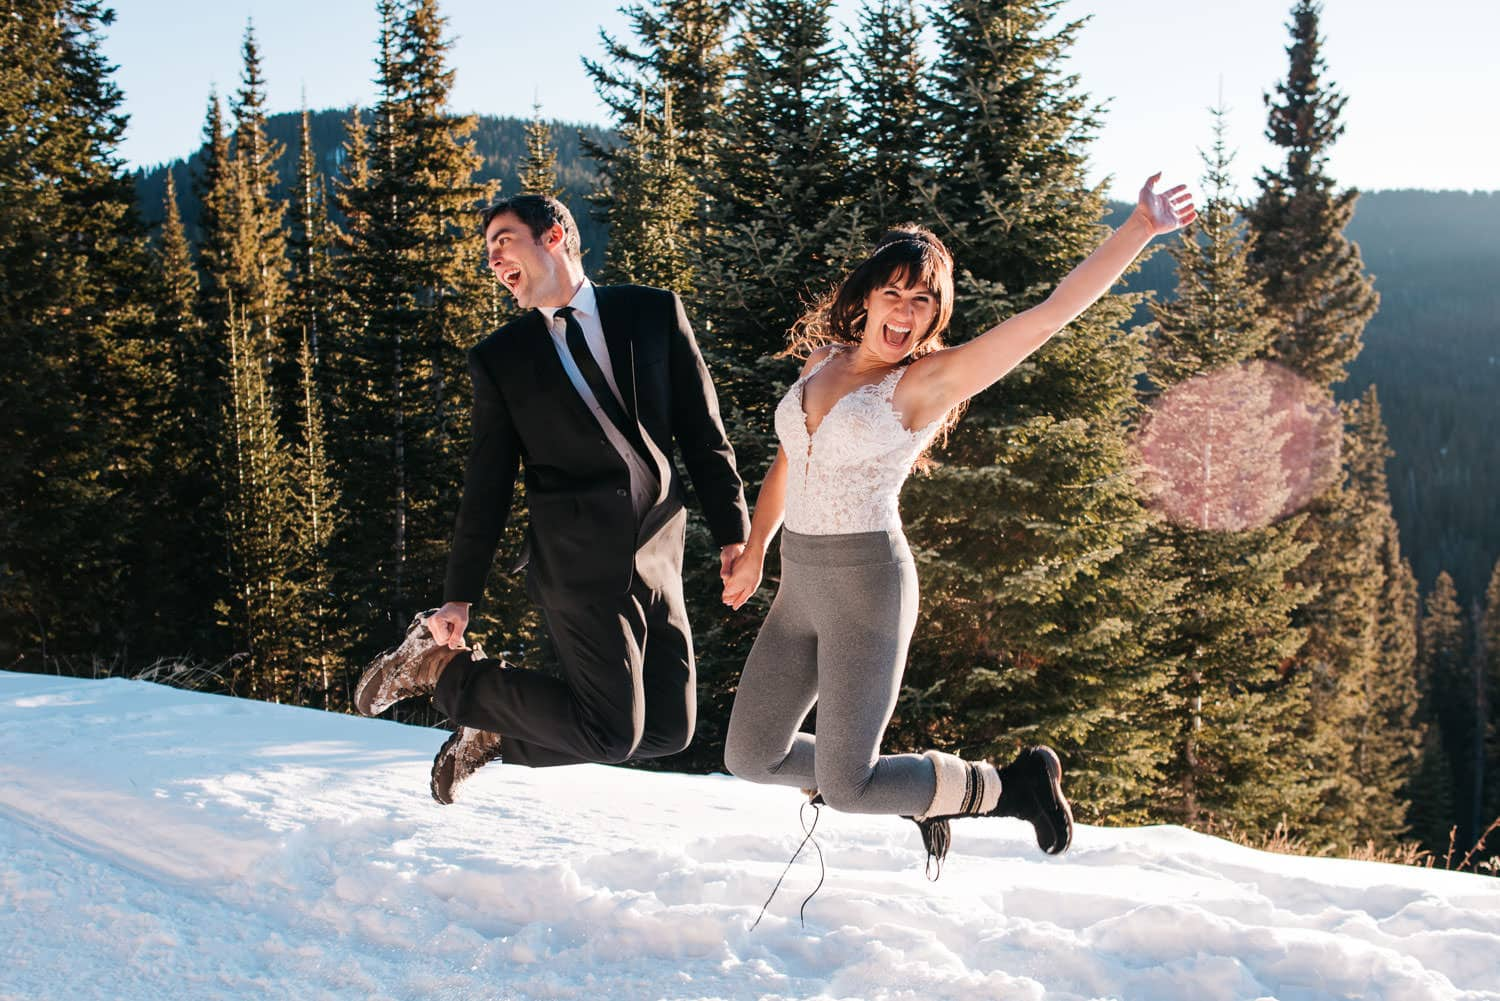 bride in convertible dress without bottom skirt and leggings on instead in the winter